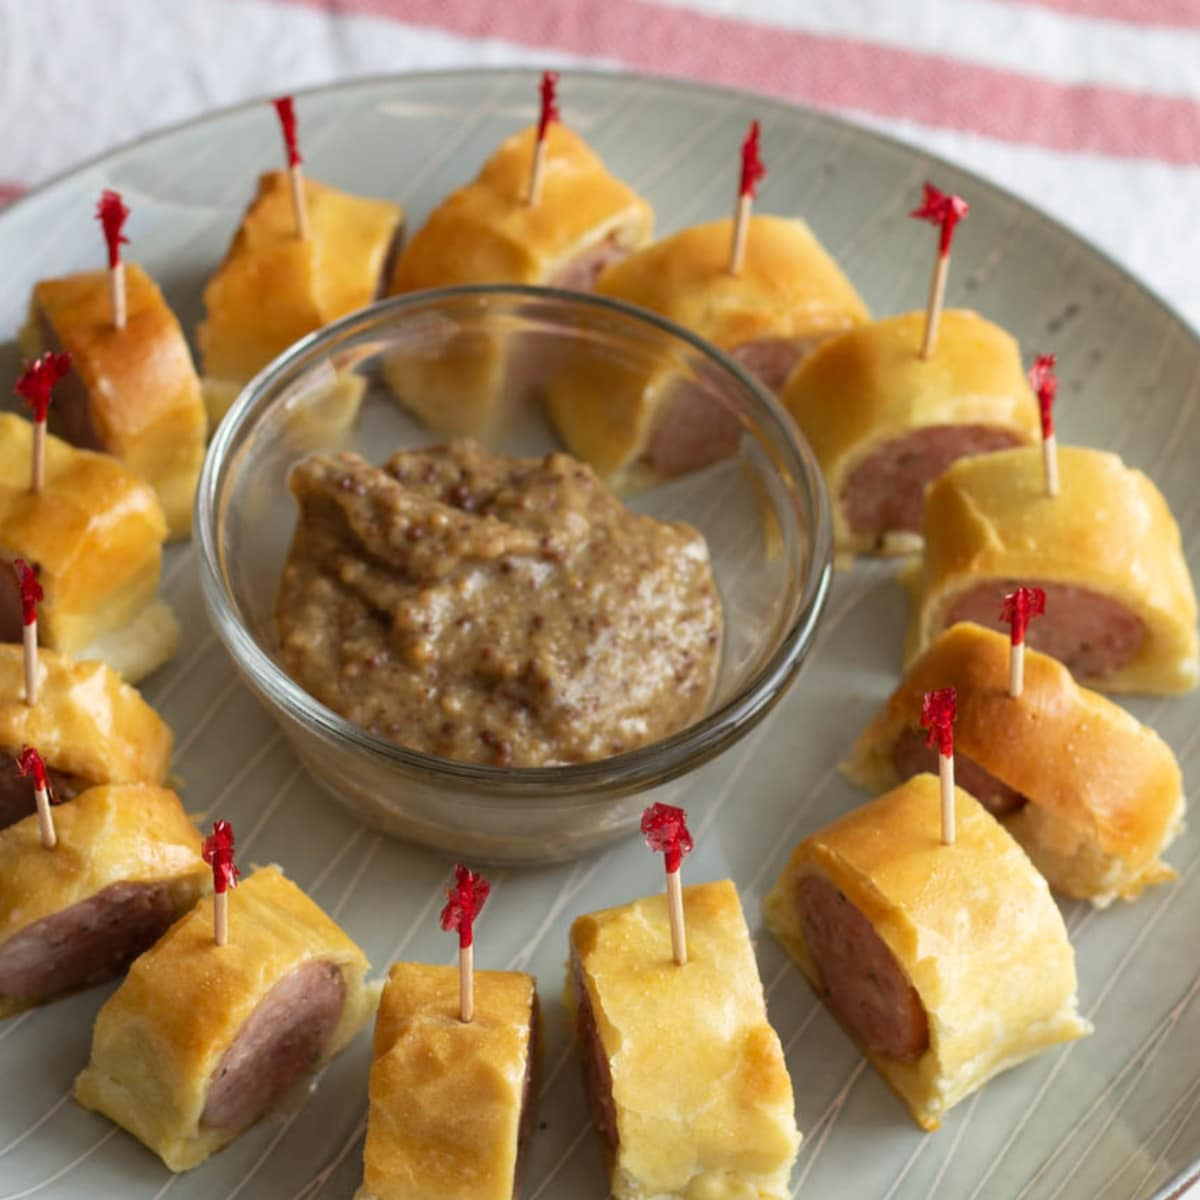 Circle of toothpick skewered sausage pieces on a plate